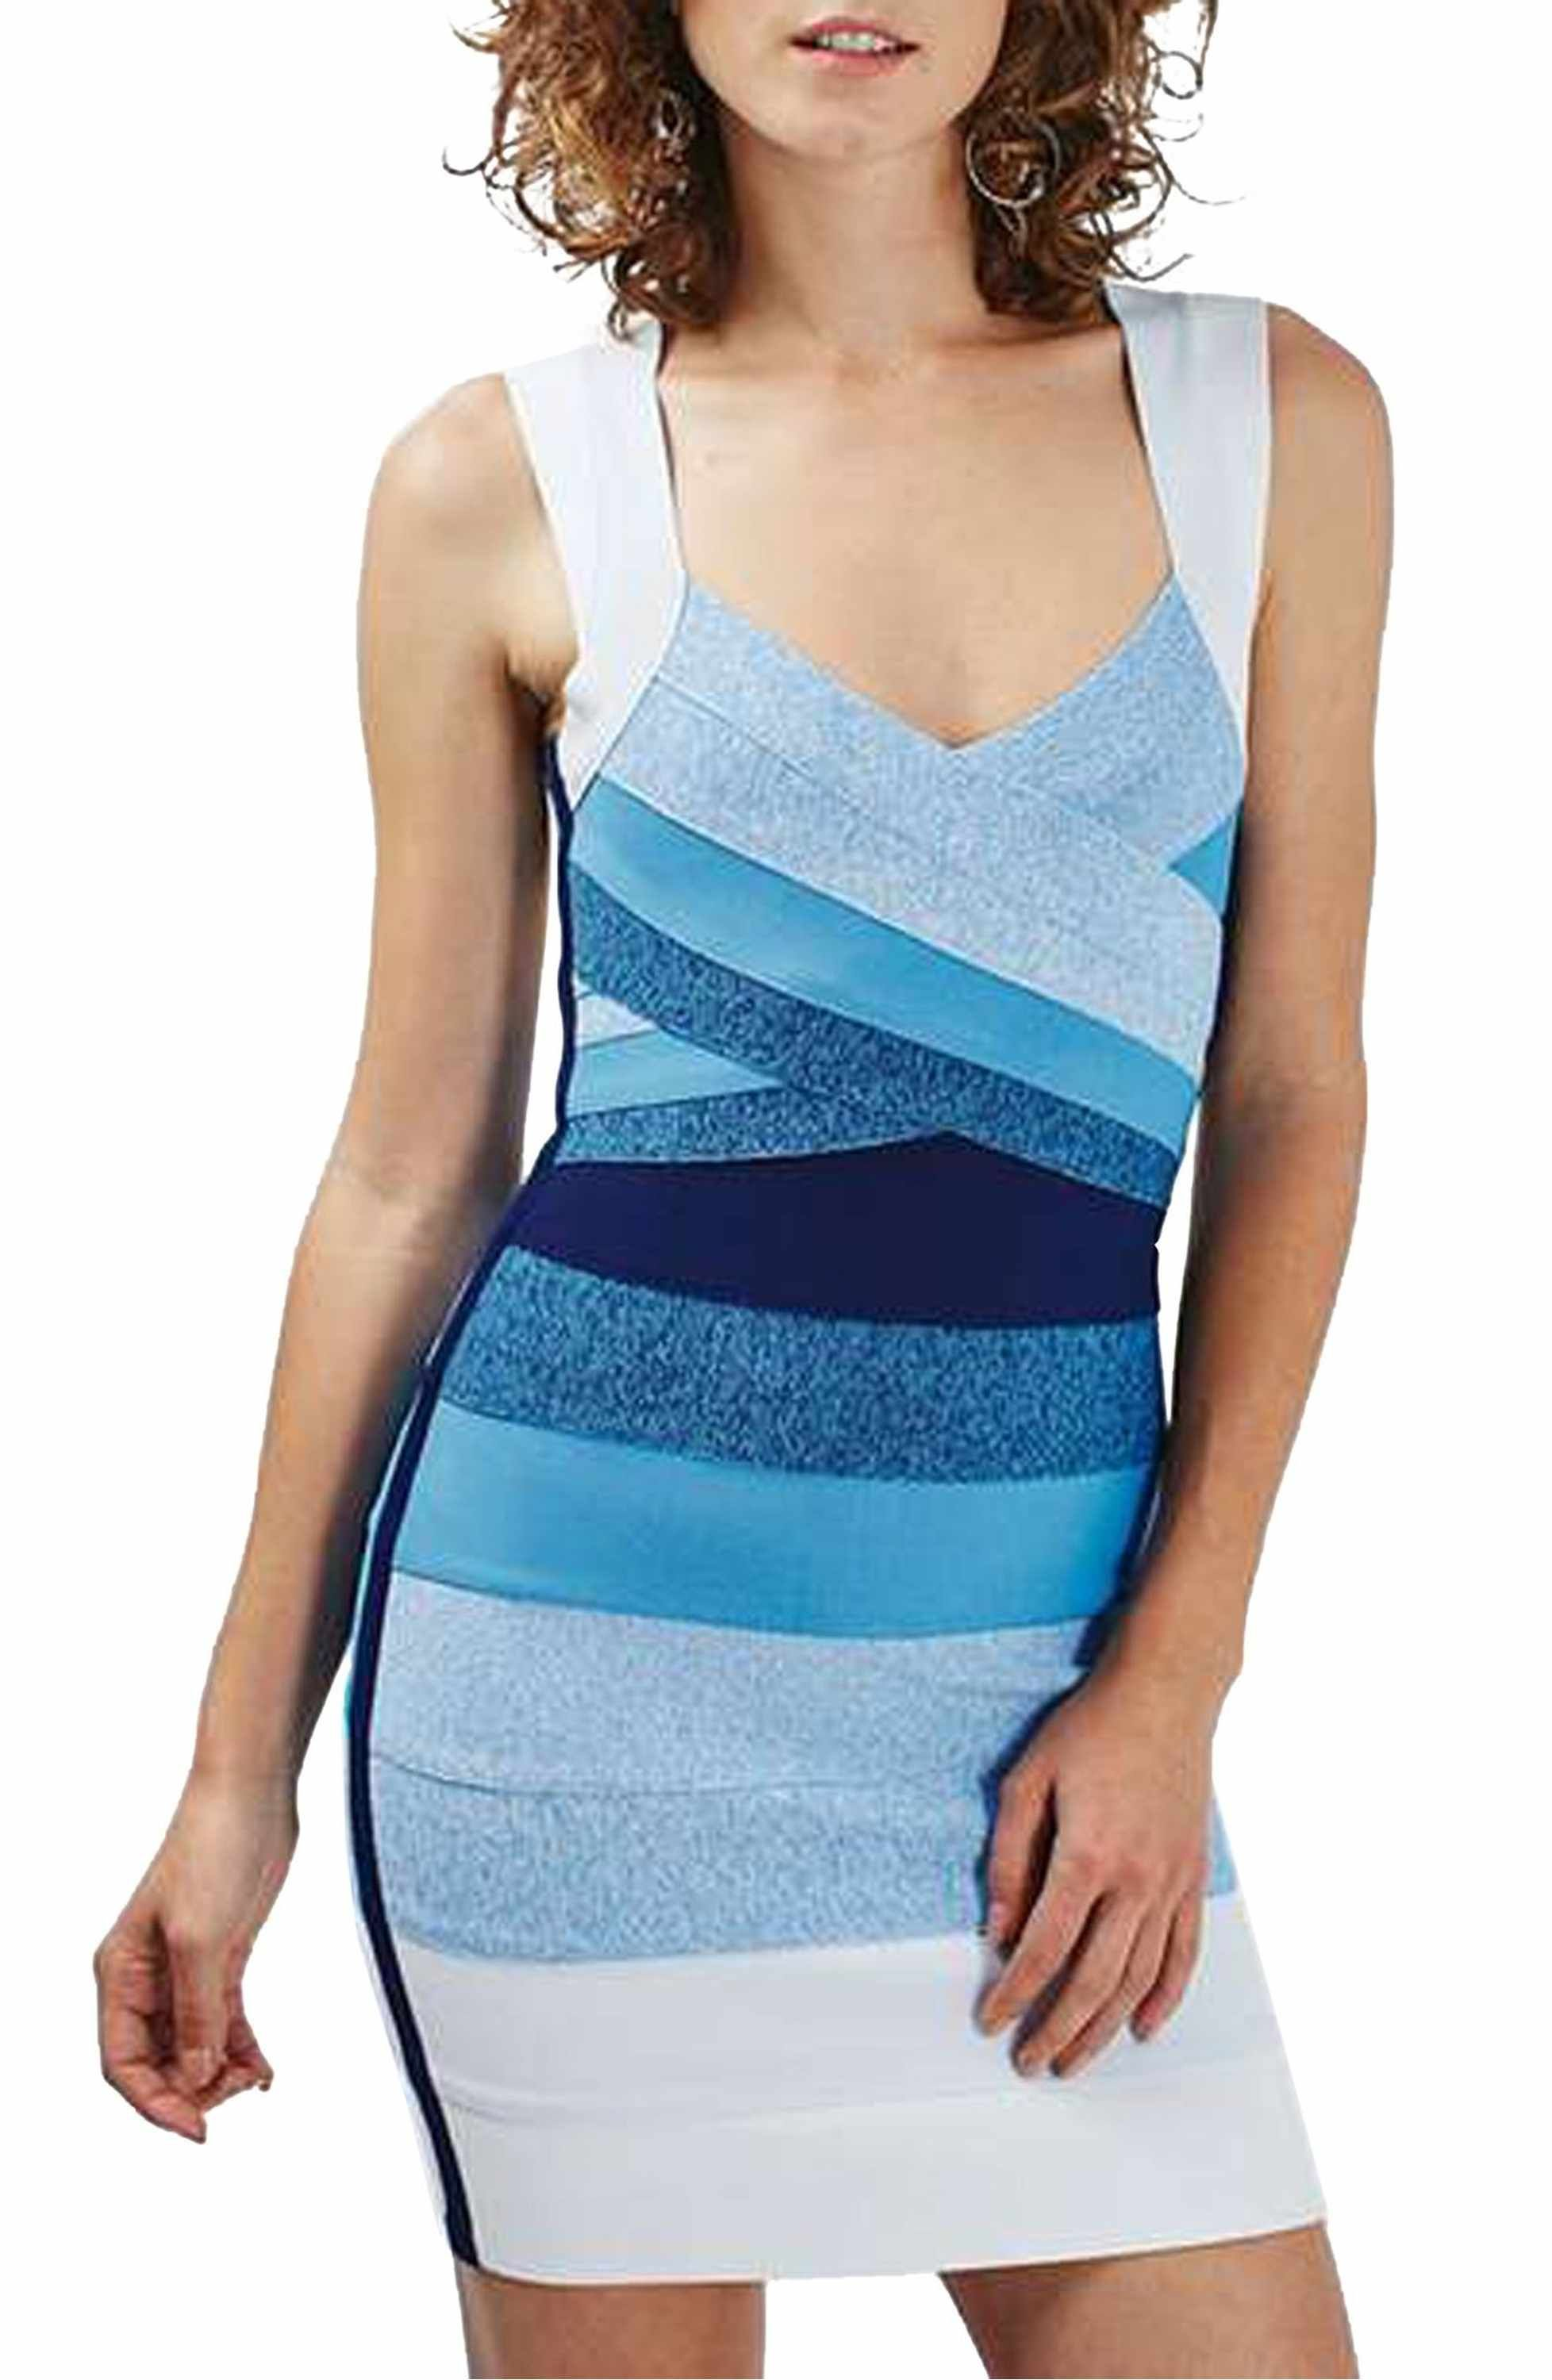 Topshop Ombre Bandage Body Con Dress Nordstrom Bodycon Dress Dresses Nordstrom Dresses [ 3000 x 1956 Pixel ]